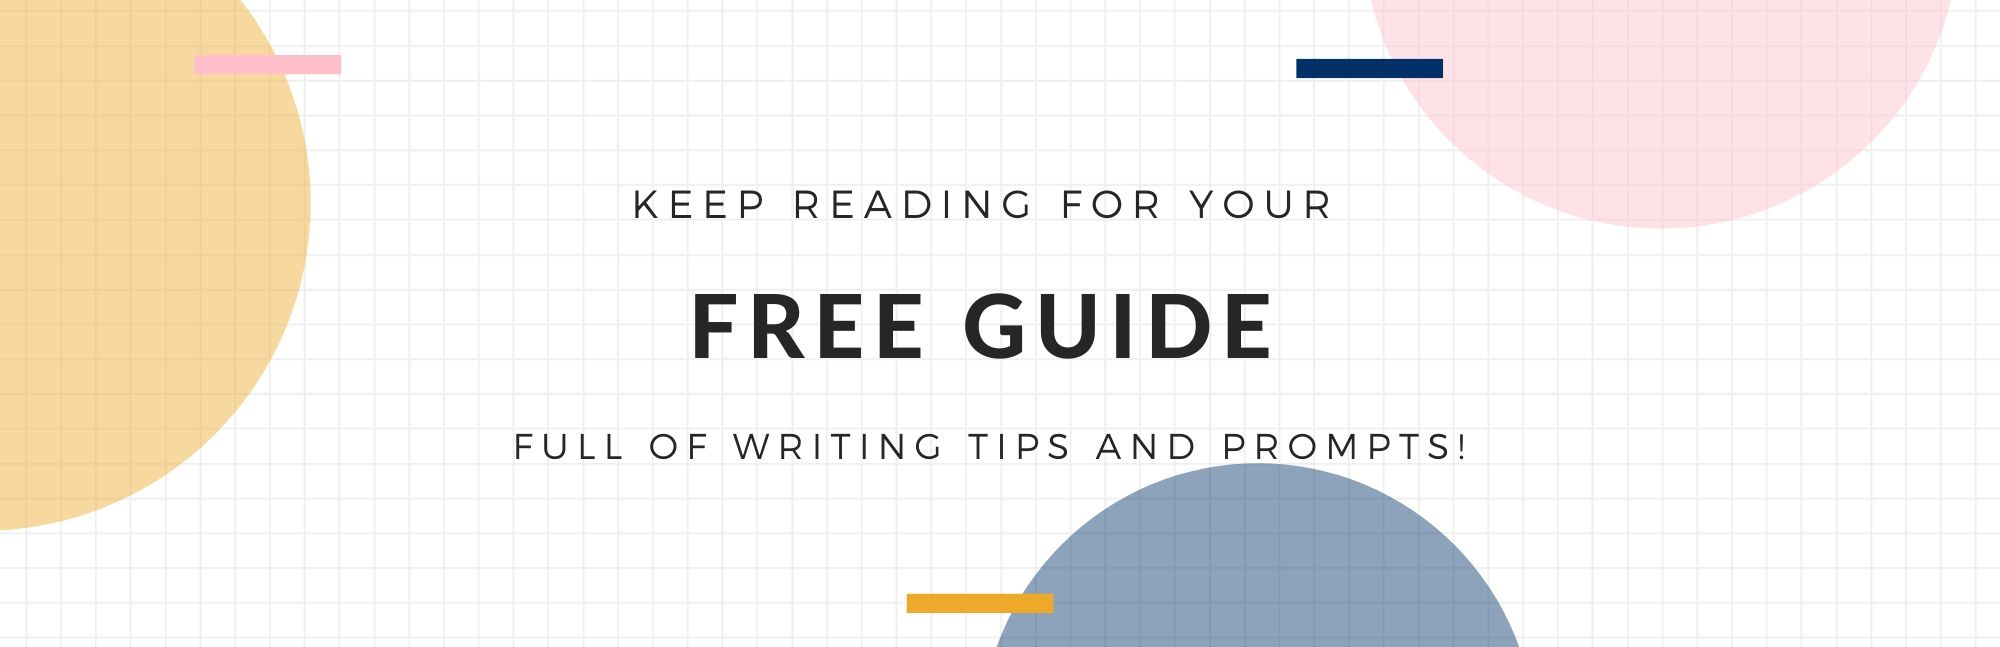 Free Writing Guide